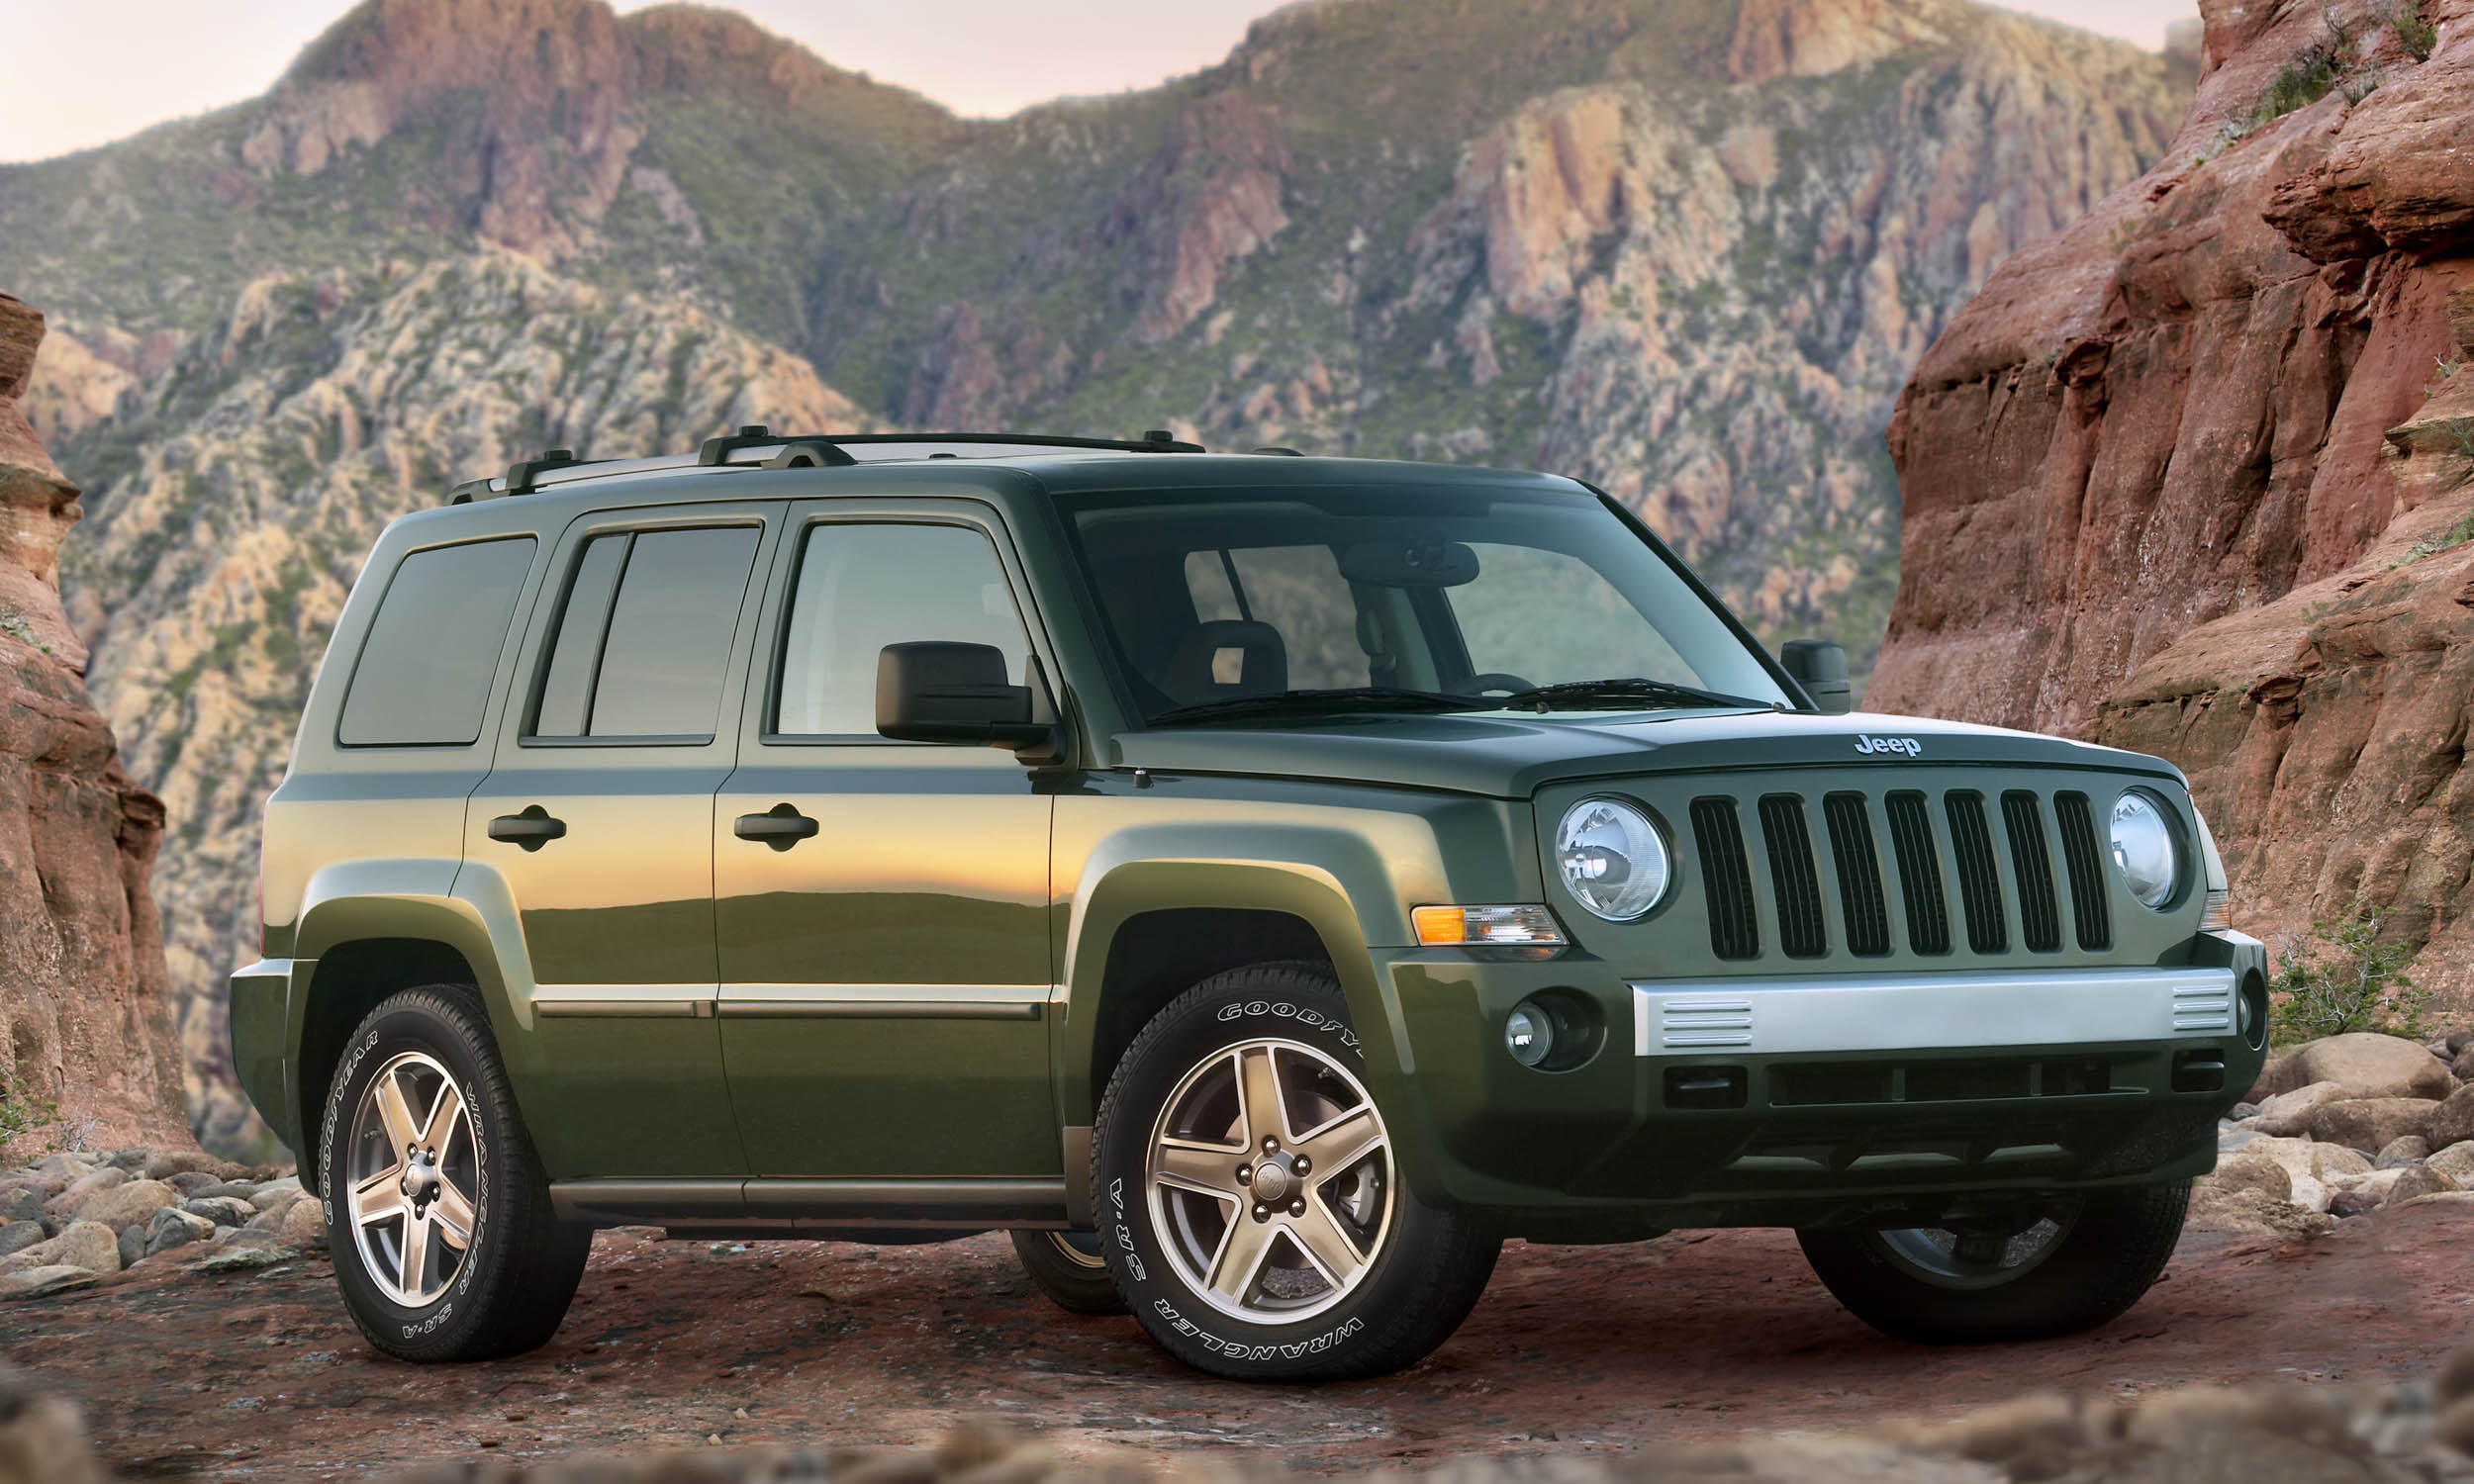 New And Used Jeep Grand Cherokee For Sale In Boston Ma  jeep patriot 2007 present one of jeep s two compact ...